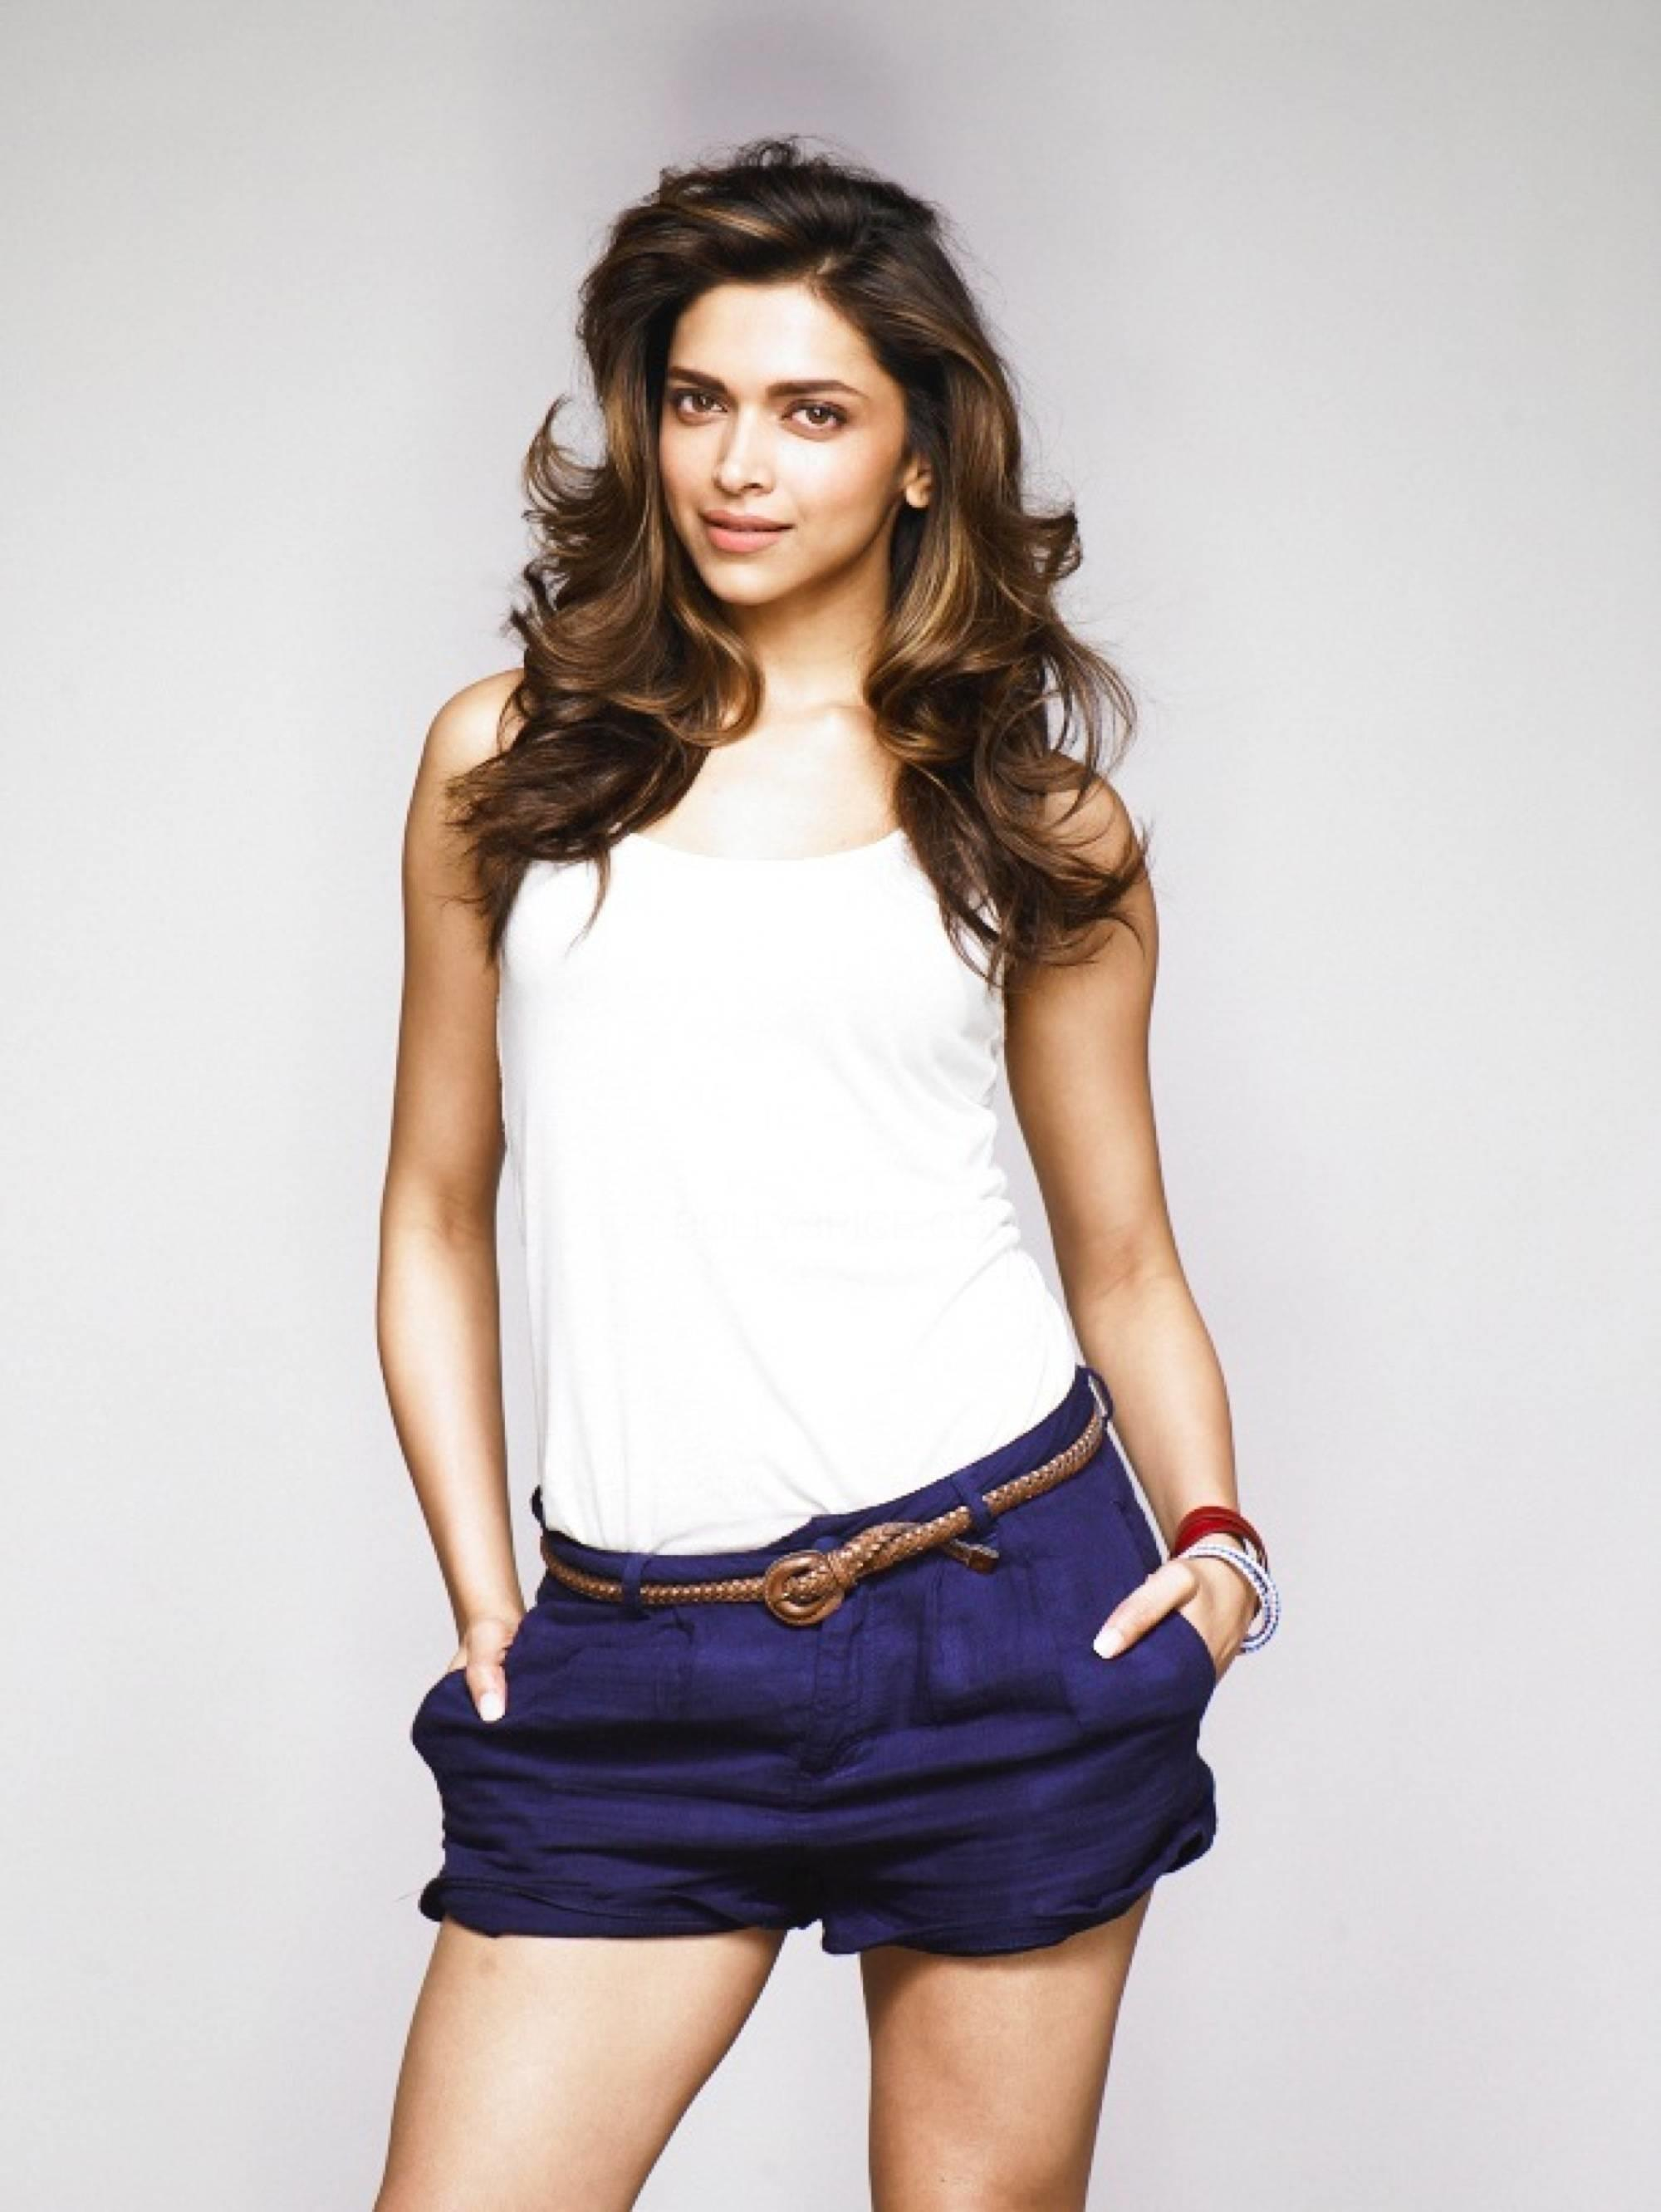 Cute Baby Wallpaper For Facebook Deepika Padukone The Fashion Girl